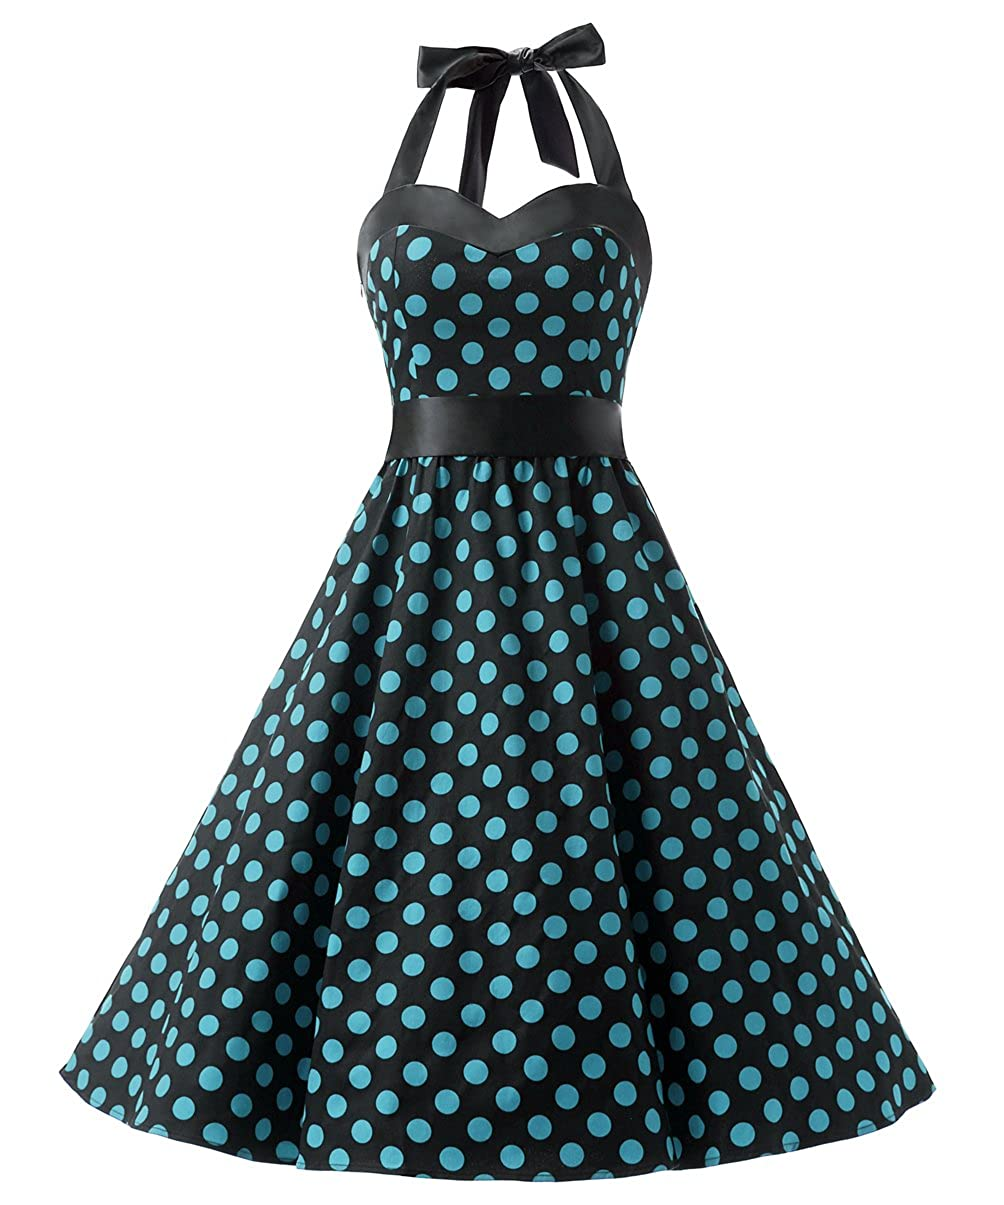 TALLA XS. Dresstells® Halter 50s Rockabilly Polka Dots Audrey Dress Retro Cocktail Dress Black Blue Dot XS